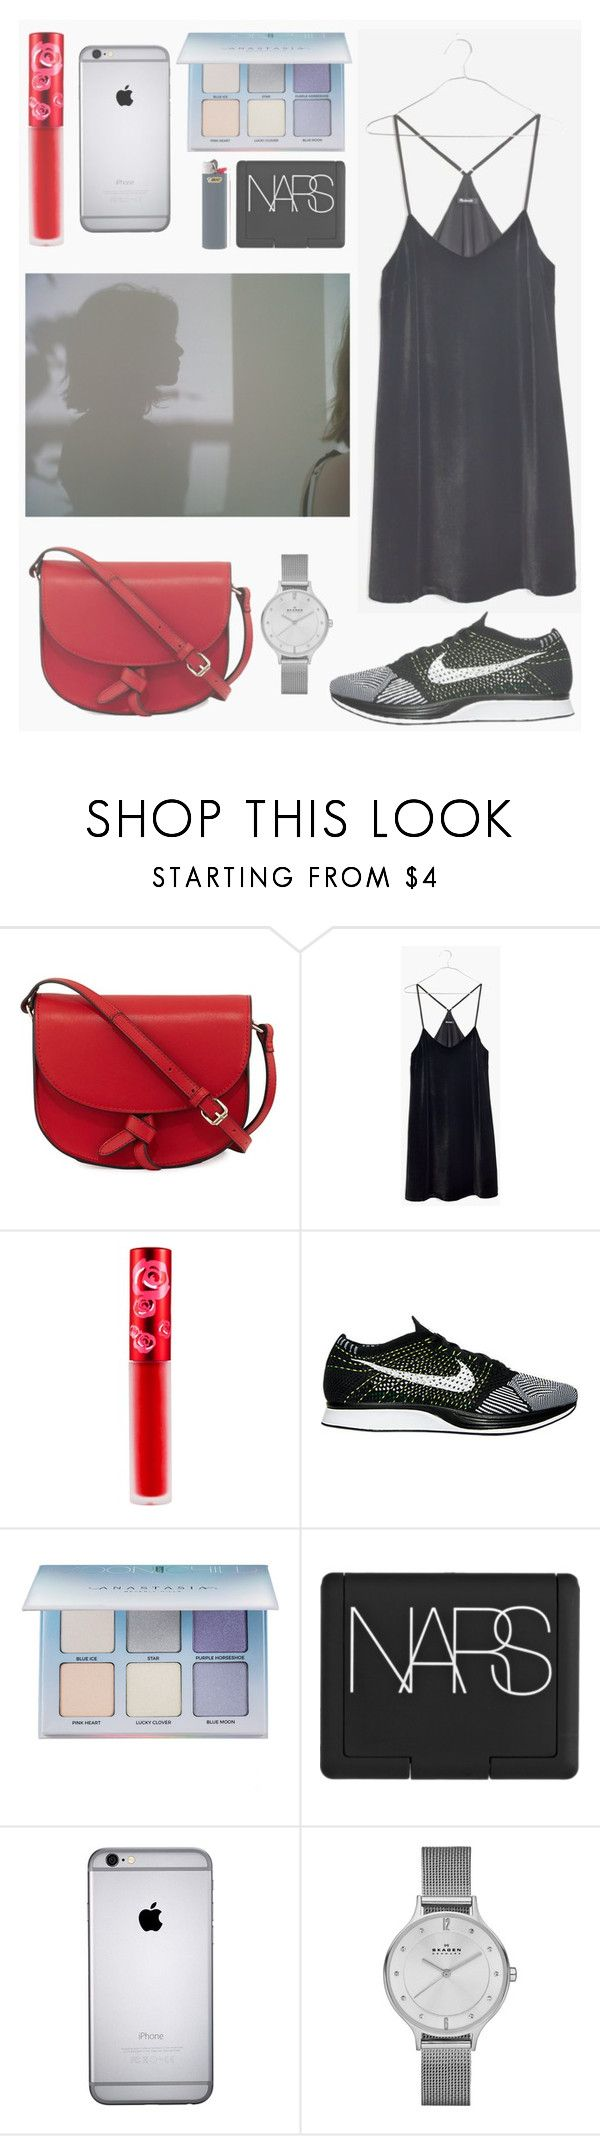 """""""Rachel."""" by the-same-people-hate-me ❤ liked on Polyvore featuring KC Jagger, Madewell, Lime Crime, NIKE, Anastasia Beverly Hills, NARS Cosmetics, Skagen, StreetStyle, soft and retro"""